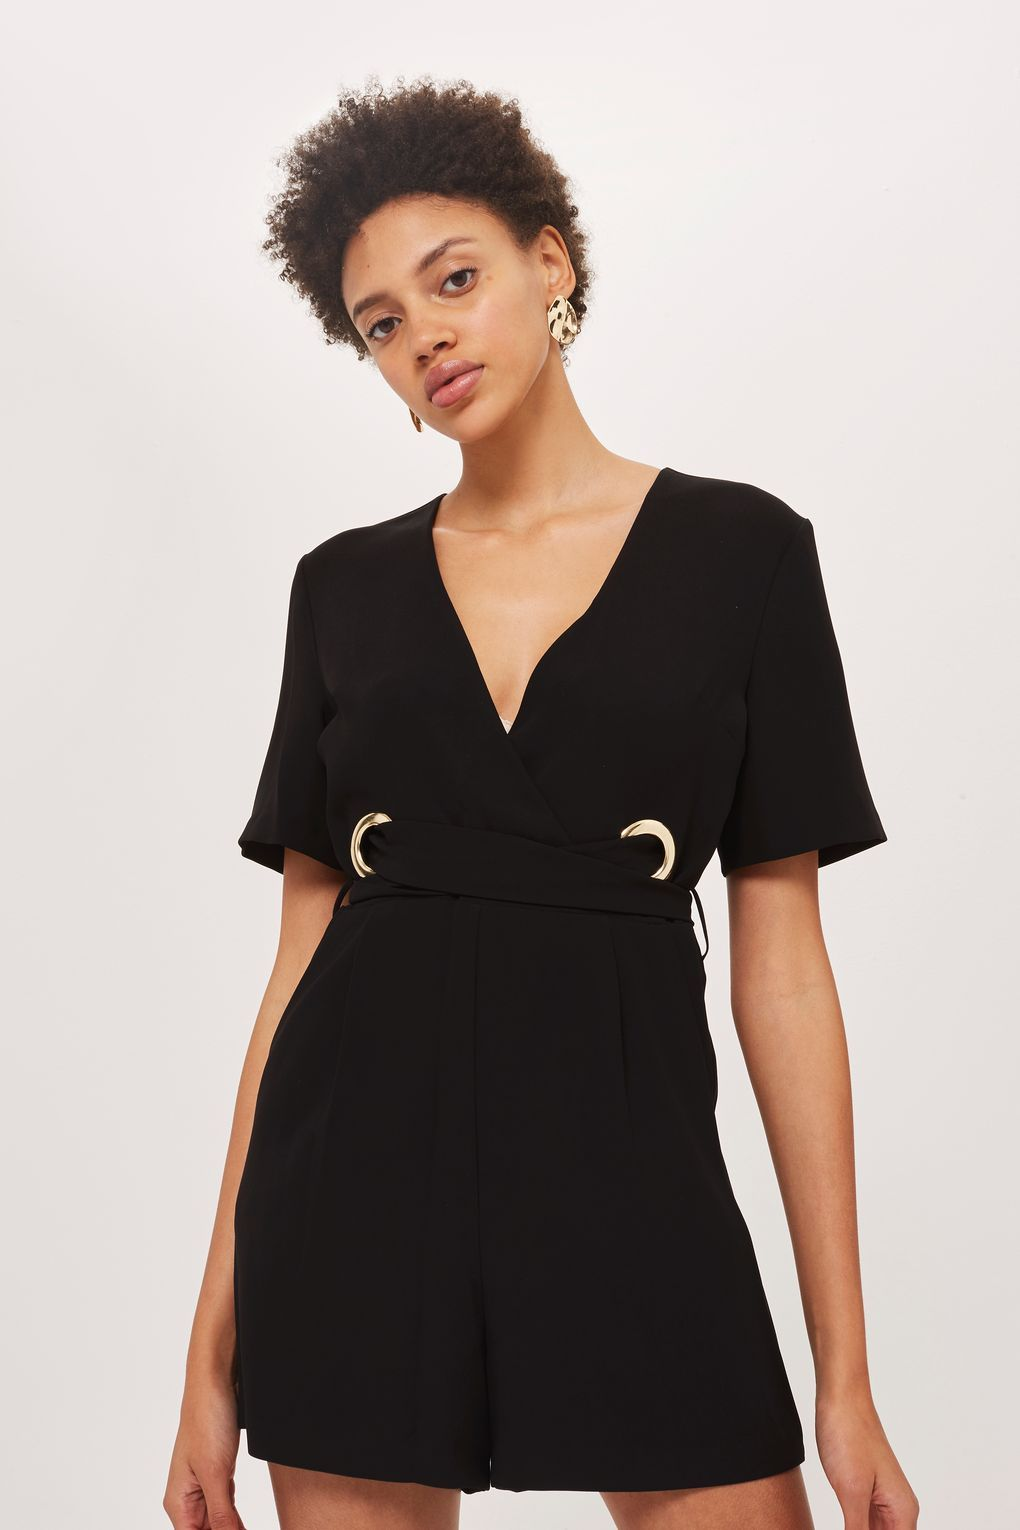 cc295fab0ed Eyelet Wrap Playsuit - Playsuits and Jumpsuits - Clothing - Topshop Europe Wrap  Playsuit